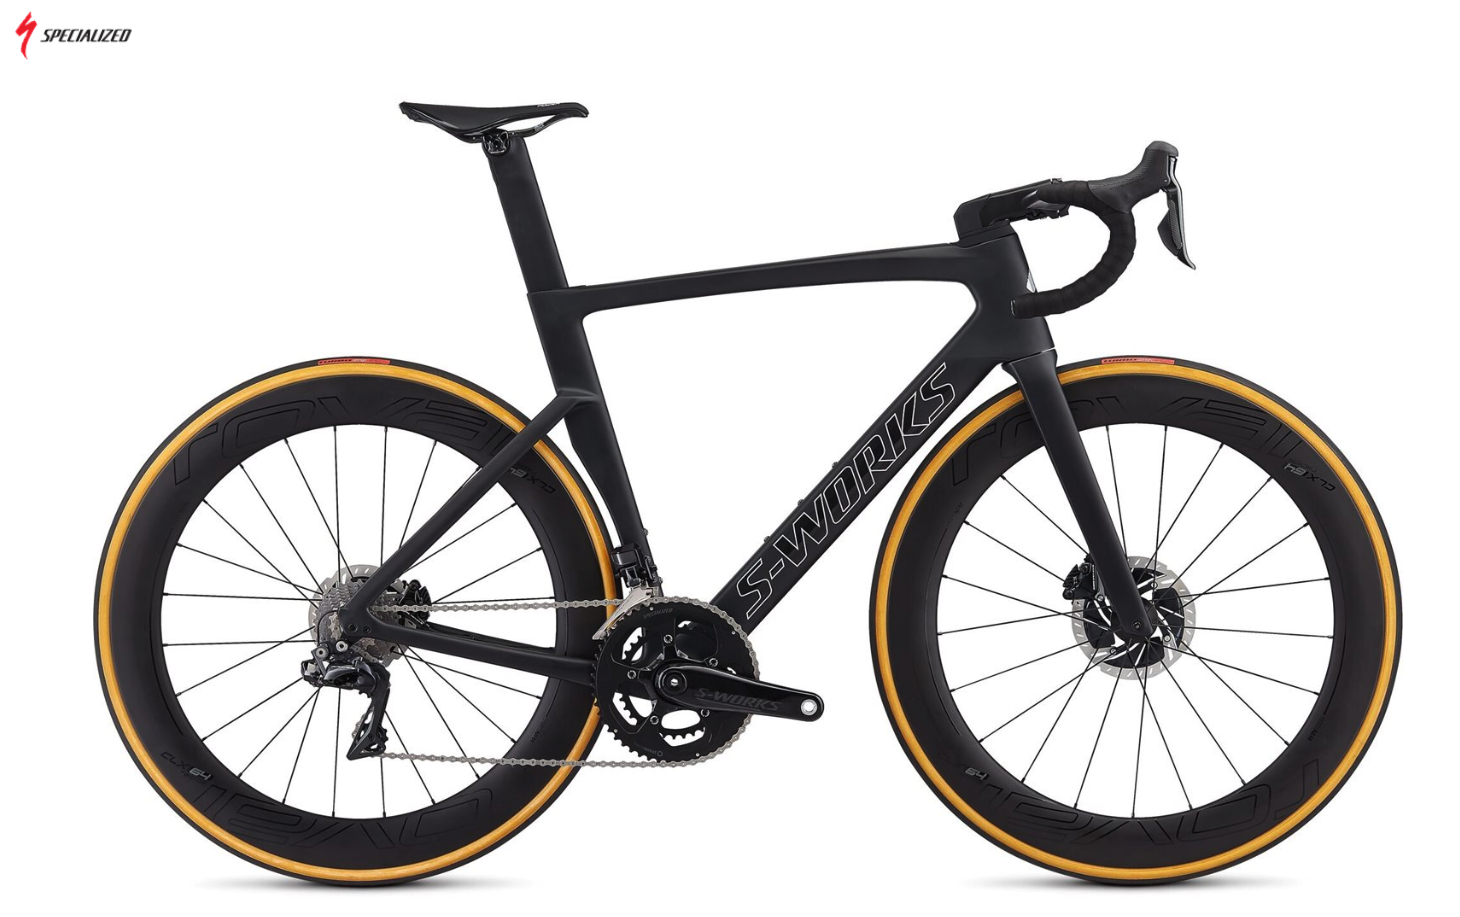 specialized bike - review by angeloutdoors.com.